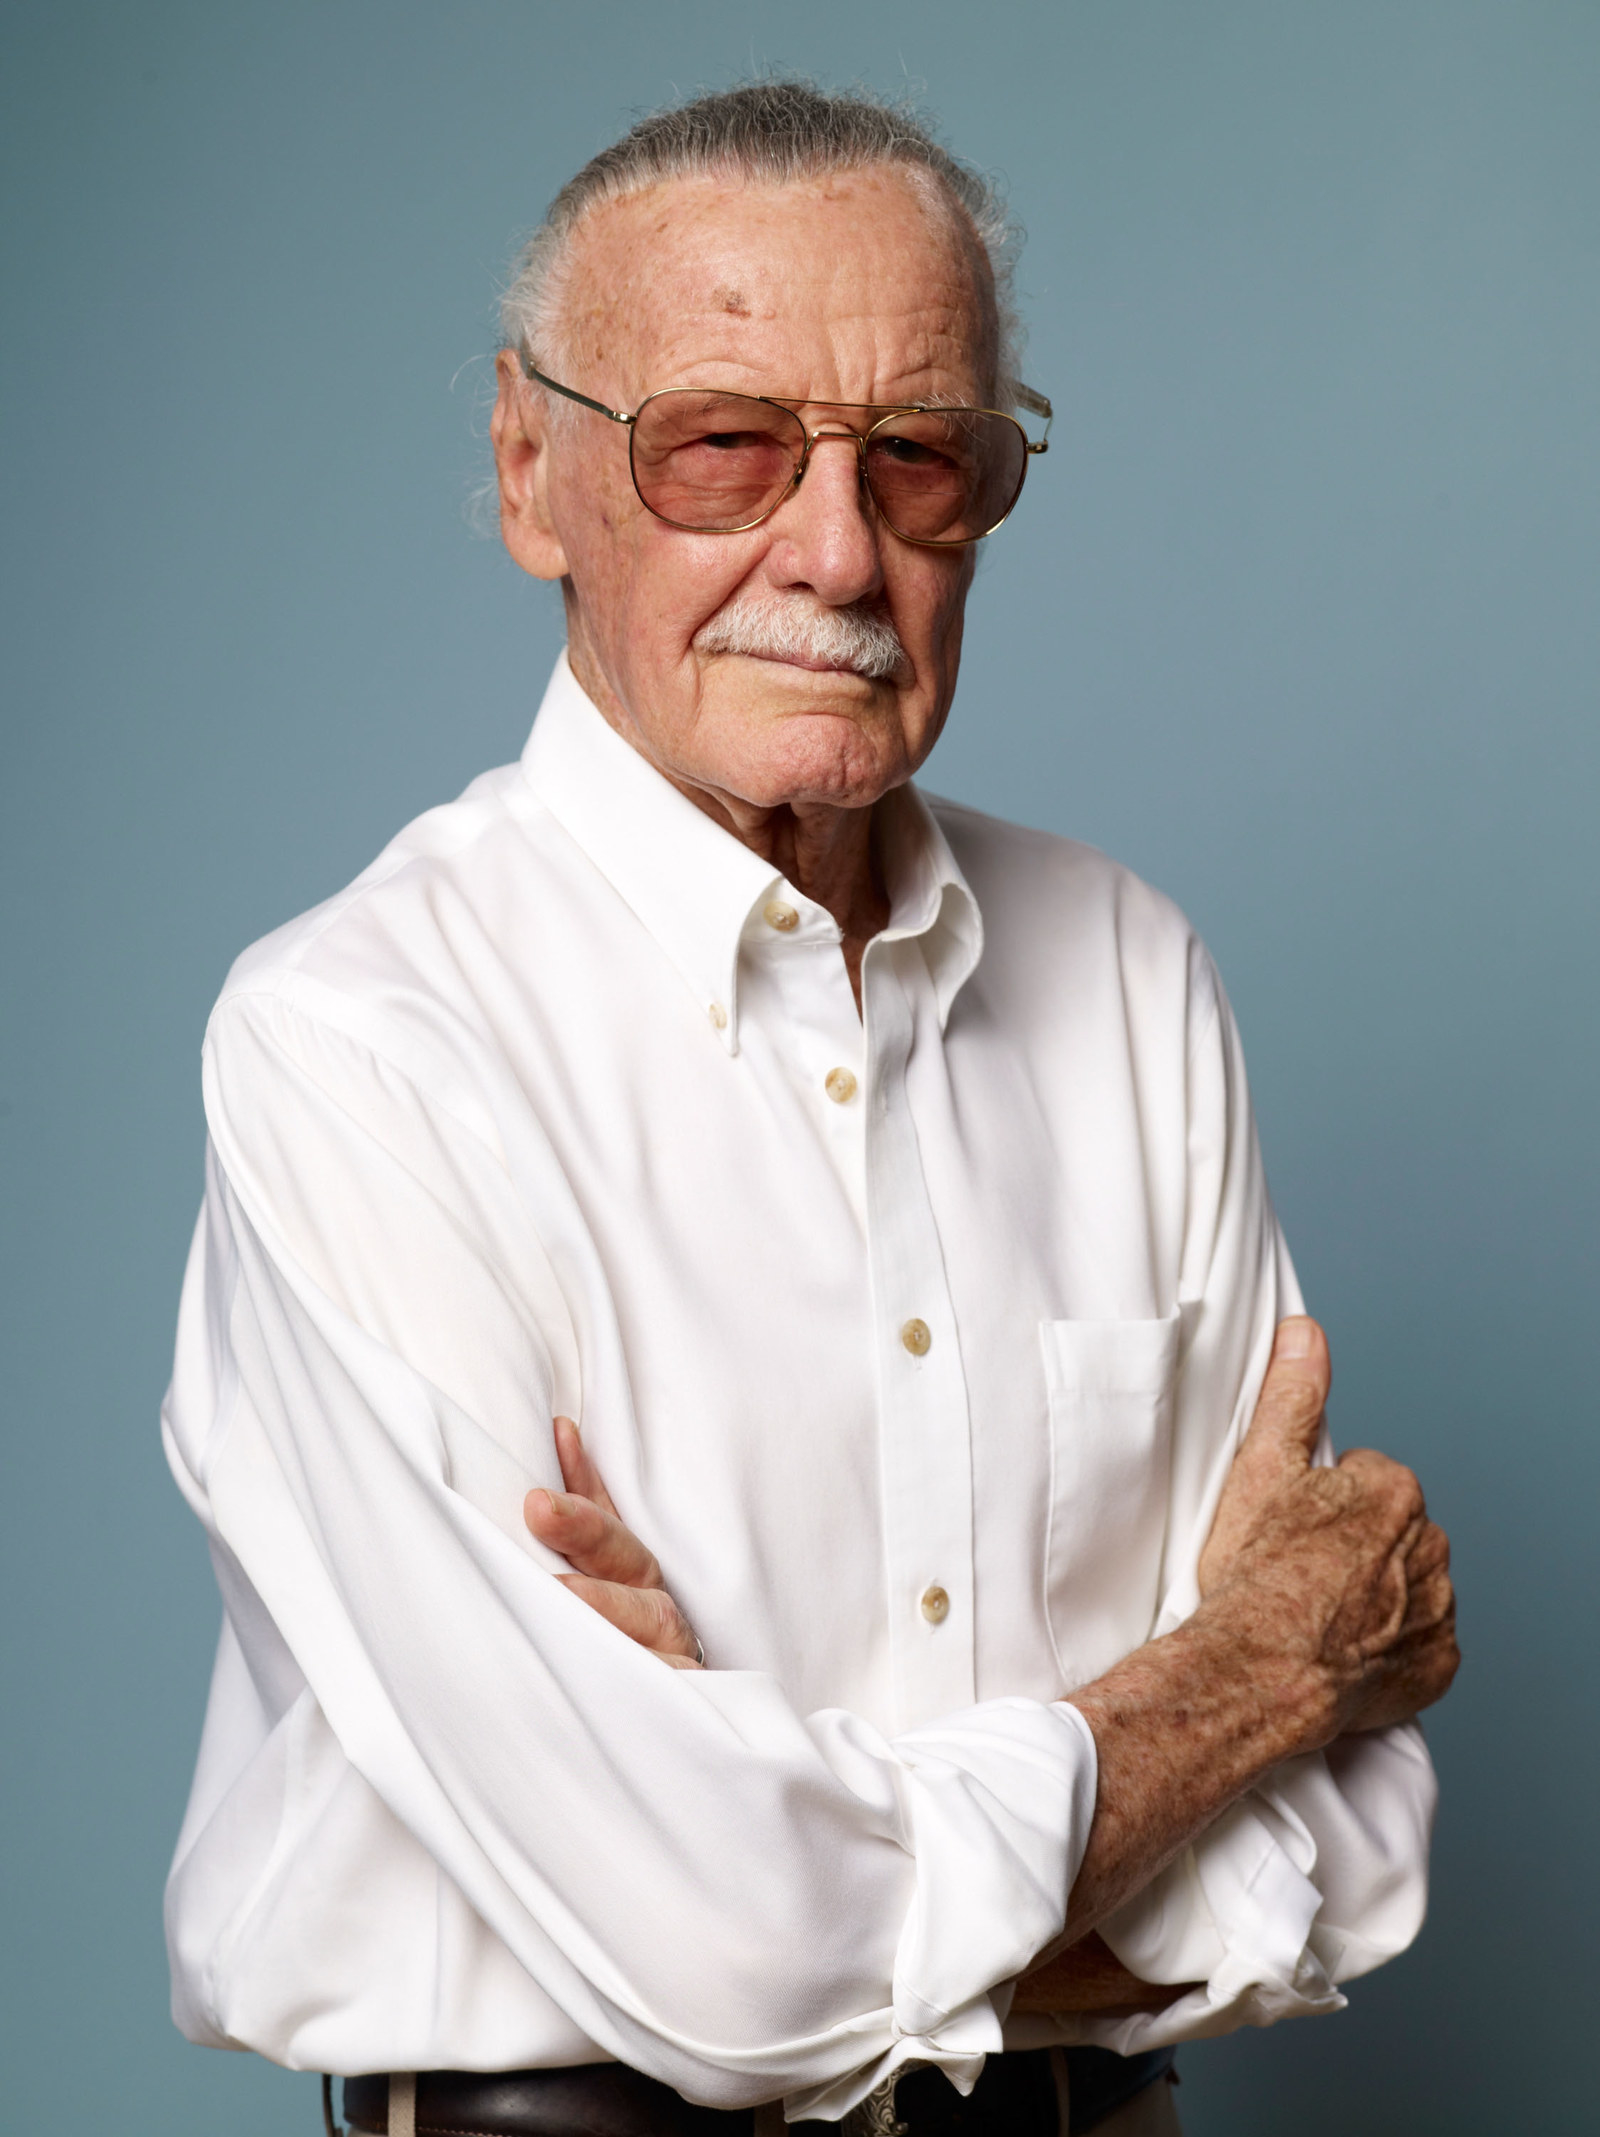 buzzfeed.com - Marvel Actors Are Reacting To Stan Lee's Death, And It Will Break Your Heart